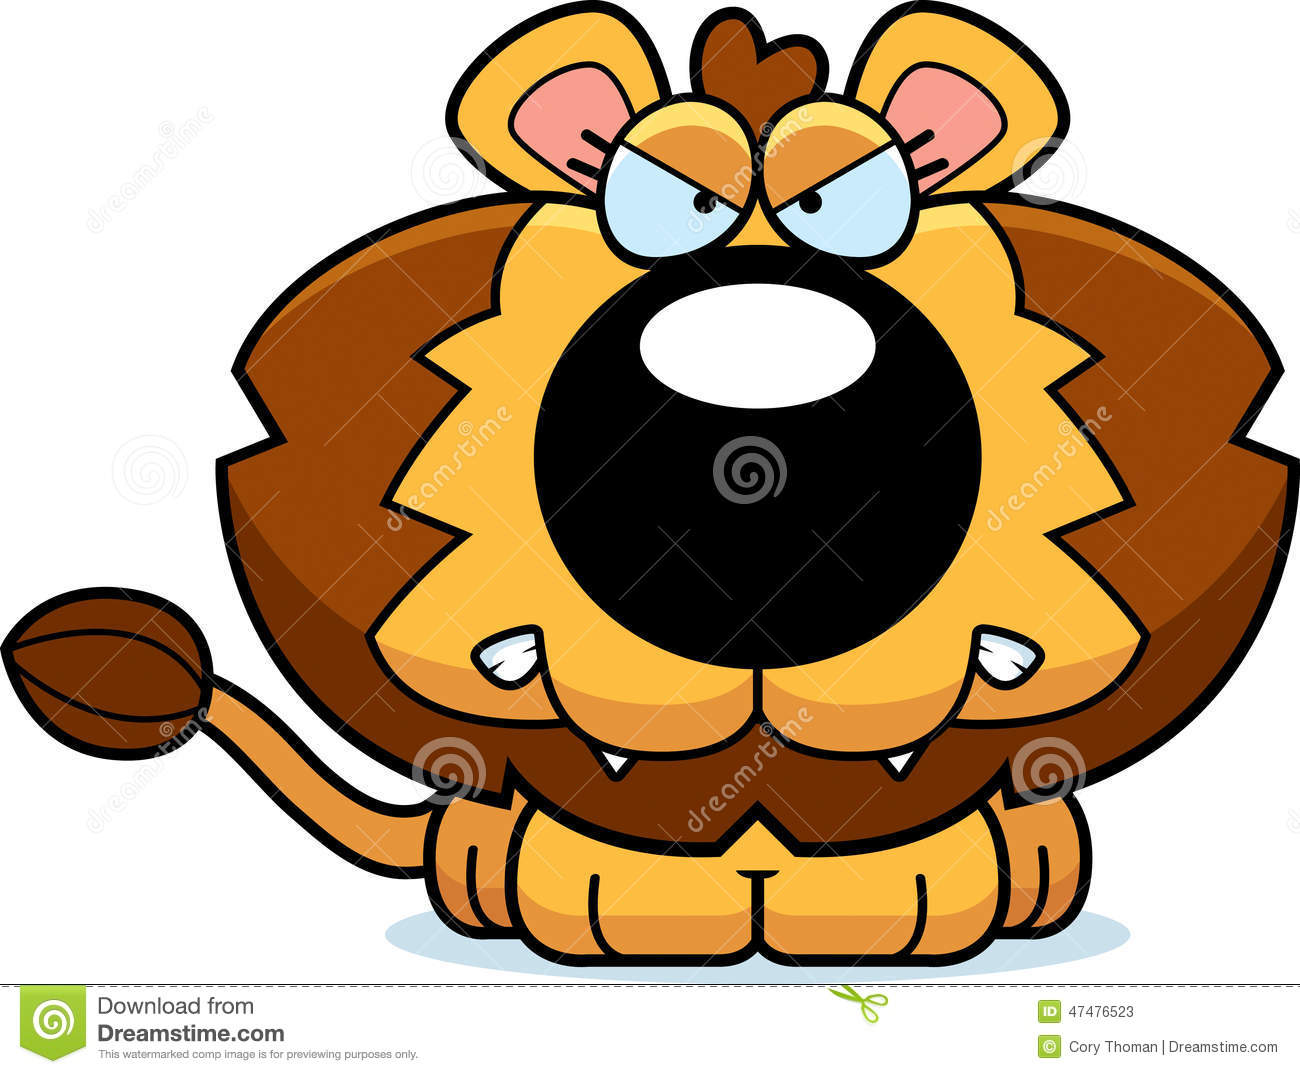 Angry lion cartoon stock vector. Illustration of cute - 48036789 for Angry Lion Animation  197uhy